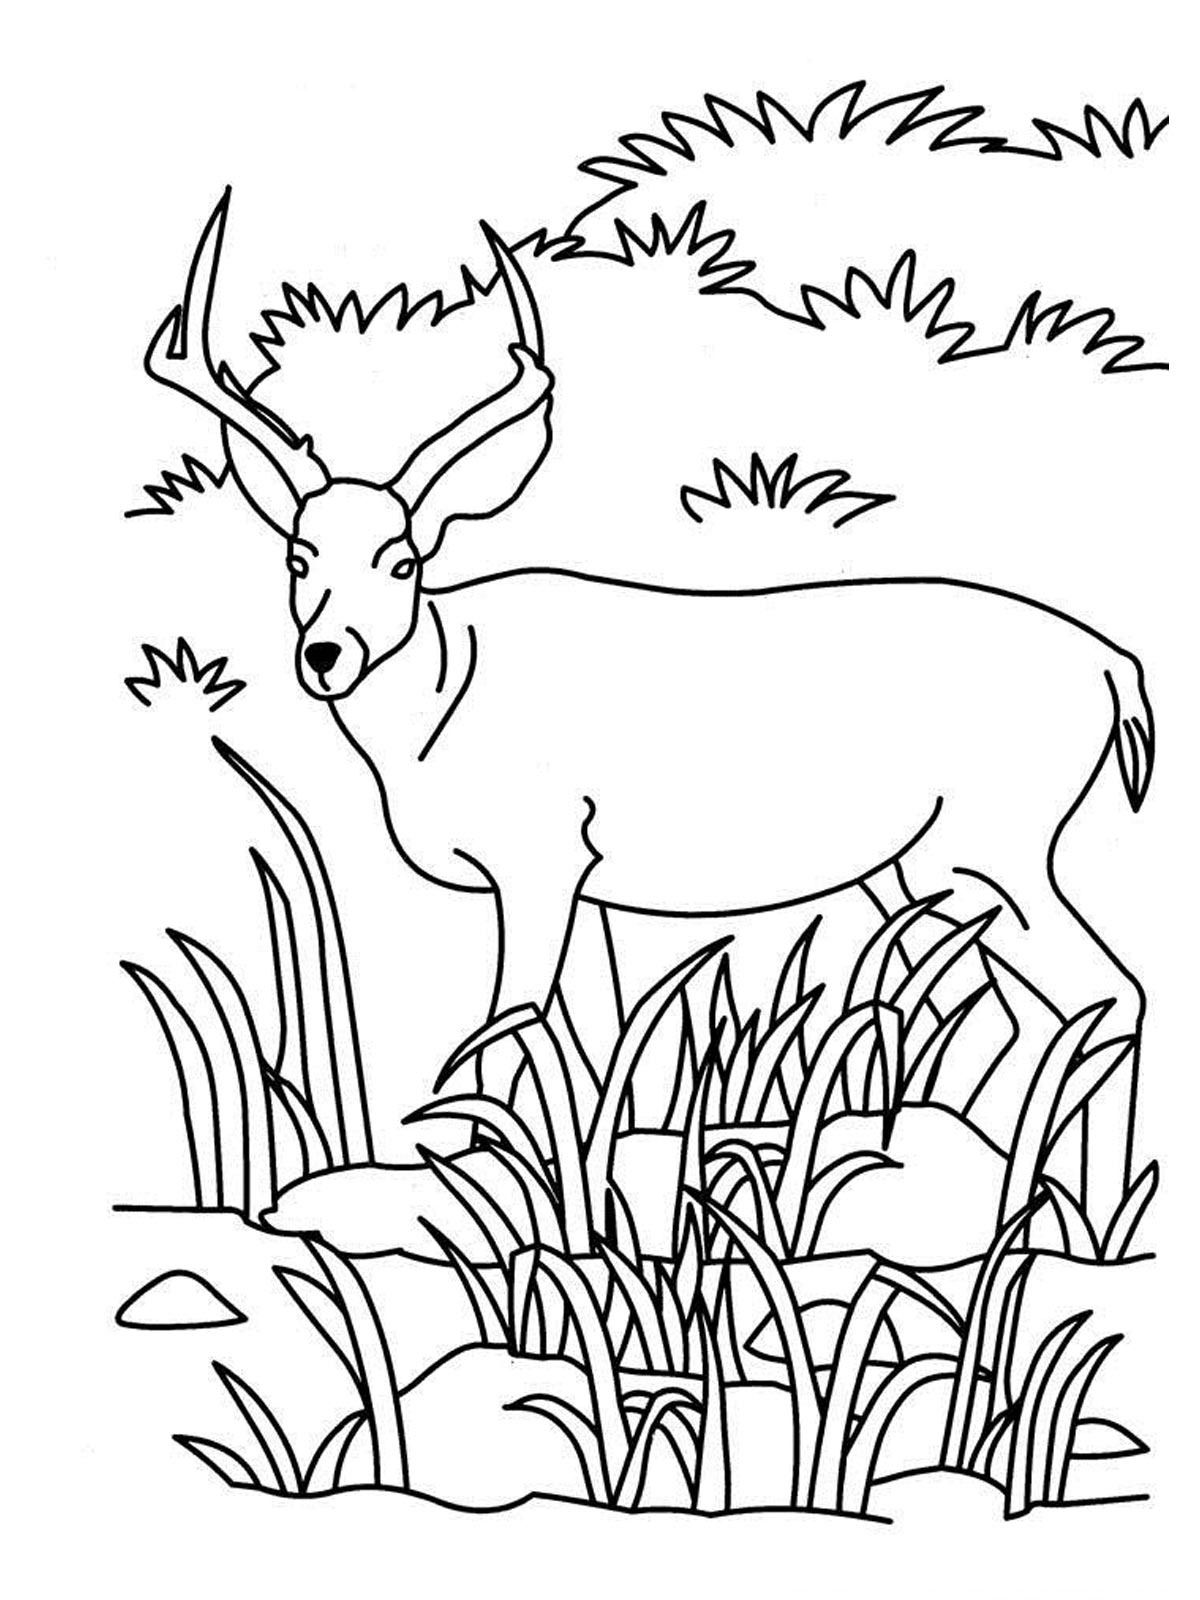 Watching Realistic Antelope Kids Coloring Pages Printable | Coloring ...